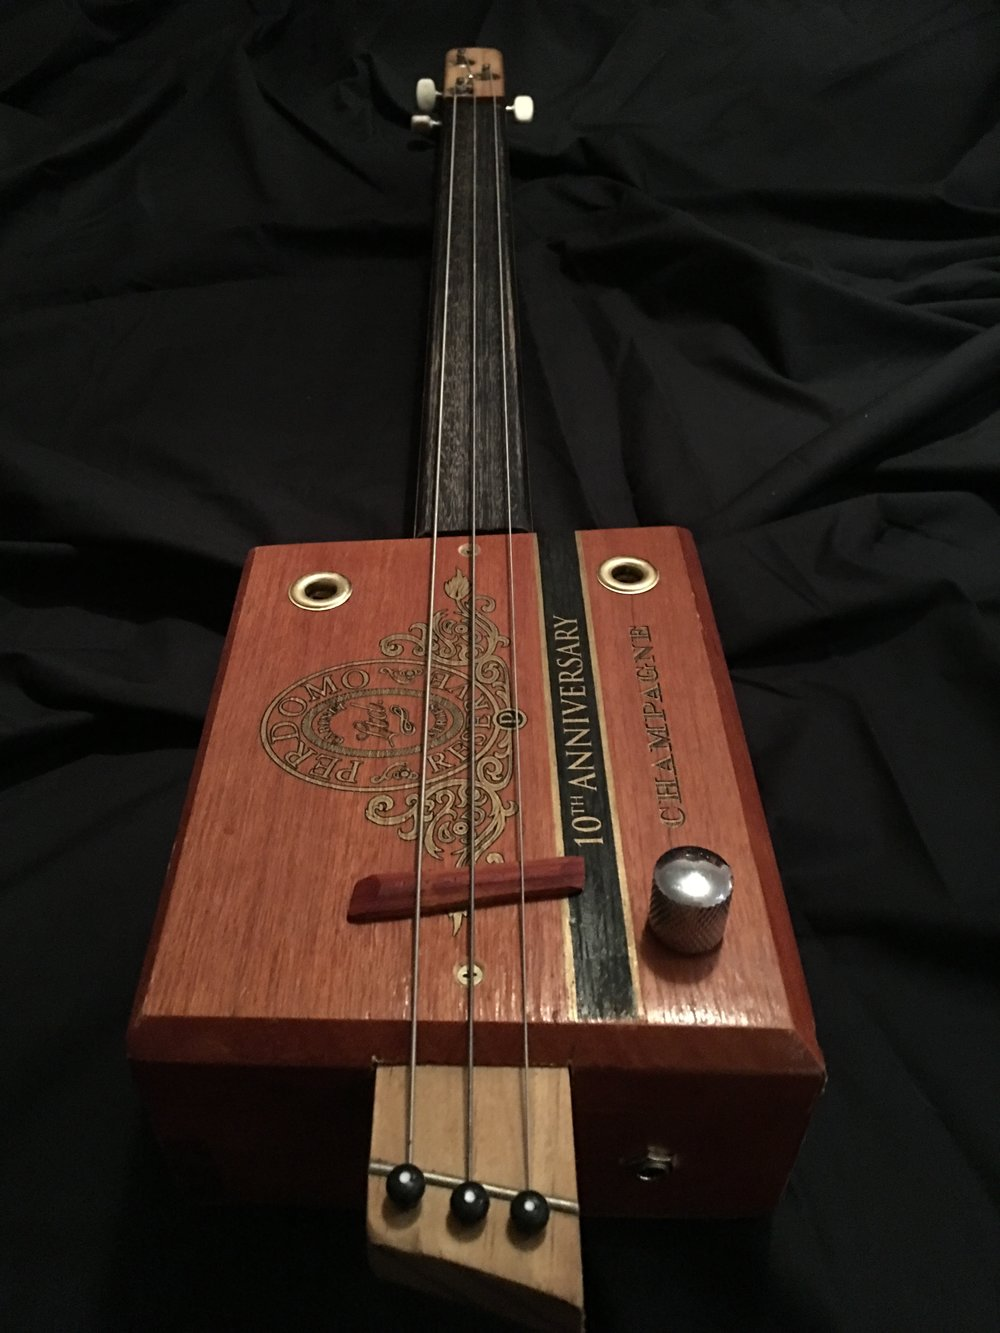 HURRICANE fretless CBG - A basic CBG doesn't need to be poorly constructed. Our HURRICANE CBG range is designed to be played at home or in front of an audience. We use an acoustic piezo pickup to amplify the acoustic properties of the guitar. As this guitar doesn't have frets you will need a finger slide.* genuine cigar boxes* timber necks with meranti finger boards* neck dot position markers* quality tuners* tuned GDg* industry standard electrics* decorative corner protectorsFrom $189